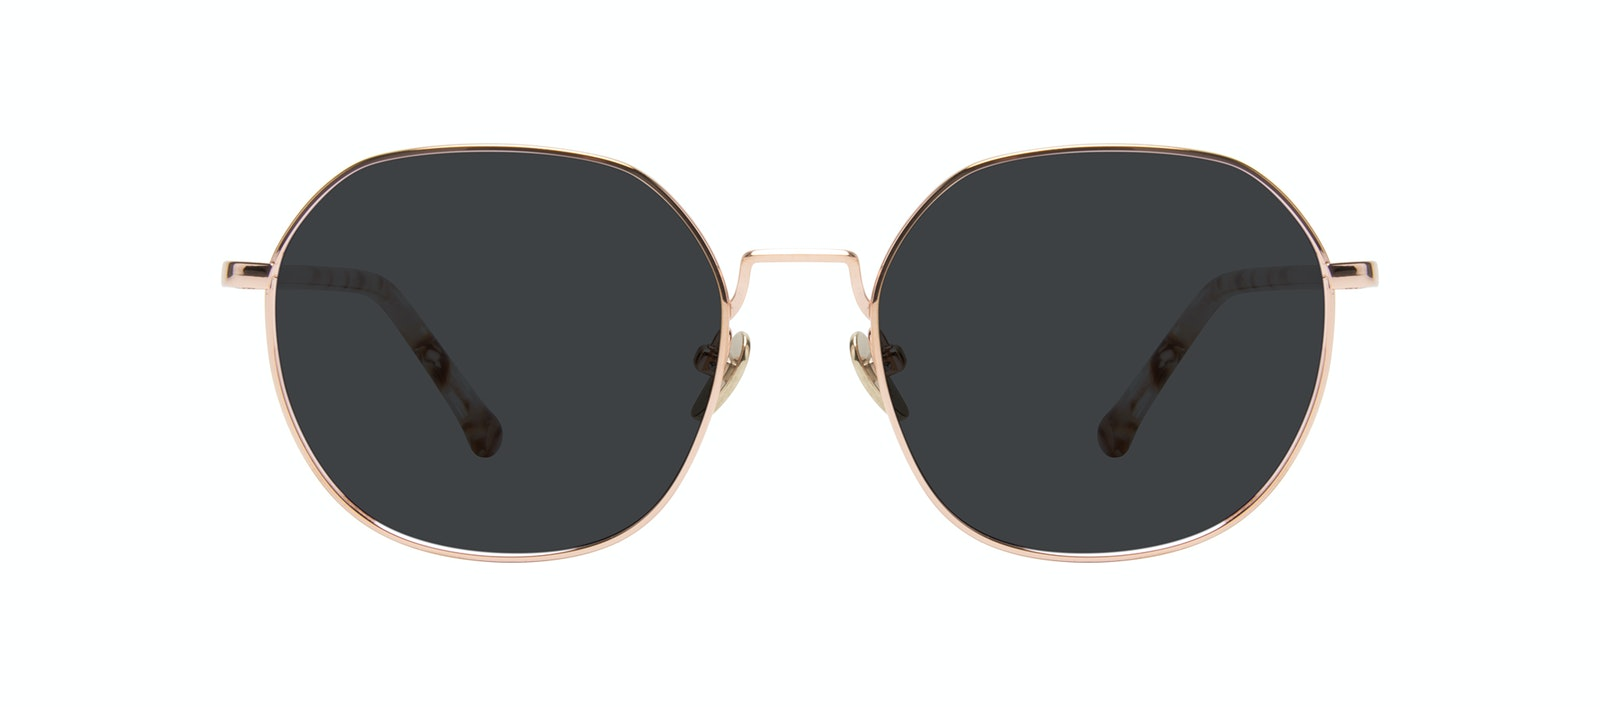 Affordable Fashion Glasses Round Sunglasses Women Coco Rose Gold Front